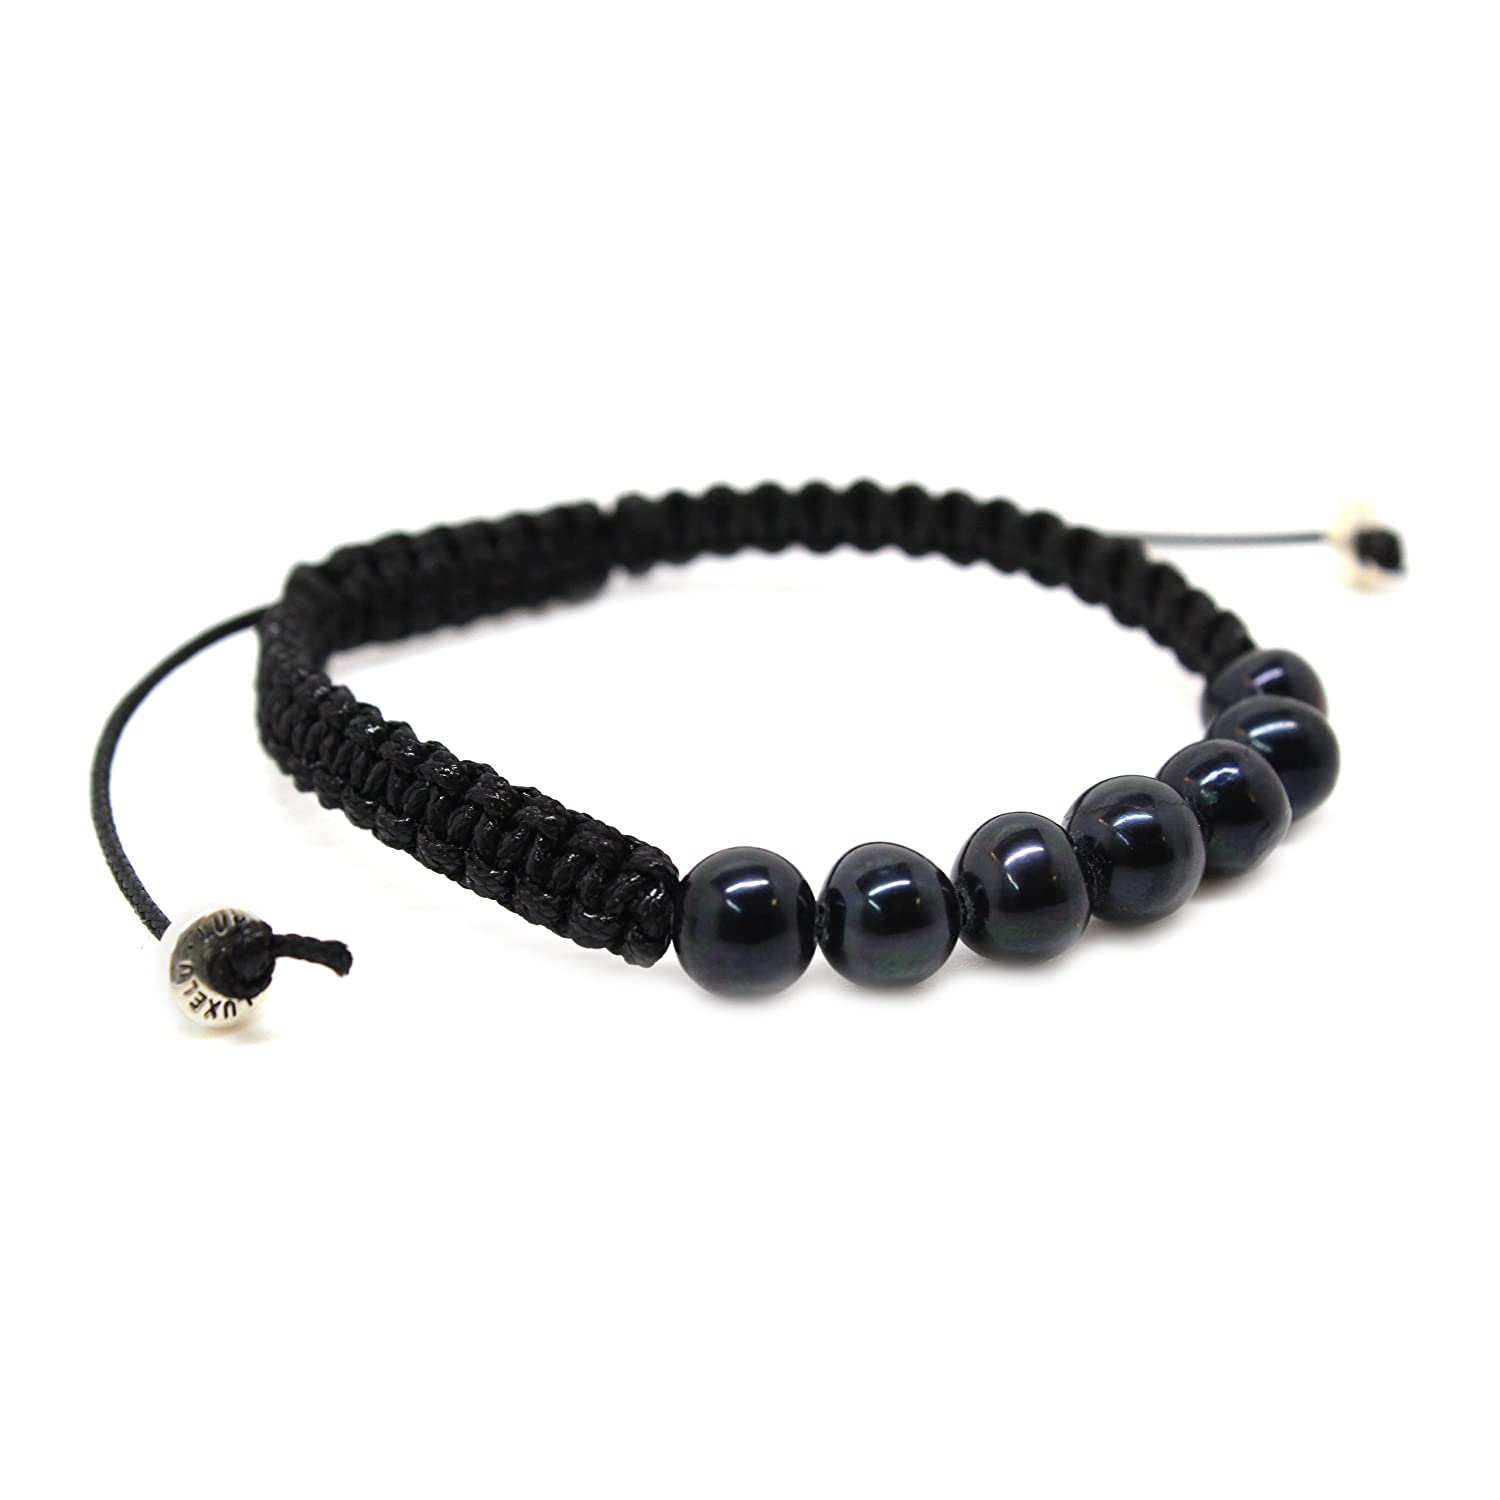 ccc77e5db Mens Bracelet - Black Pearl Beads, Black Macrame Rope and Sterling Silver -  Luxelu London Black Pearl Collection (Medium/Large): Luxelu: Amazon.co.uk:  ...